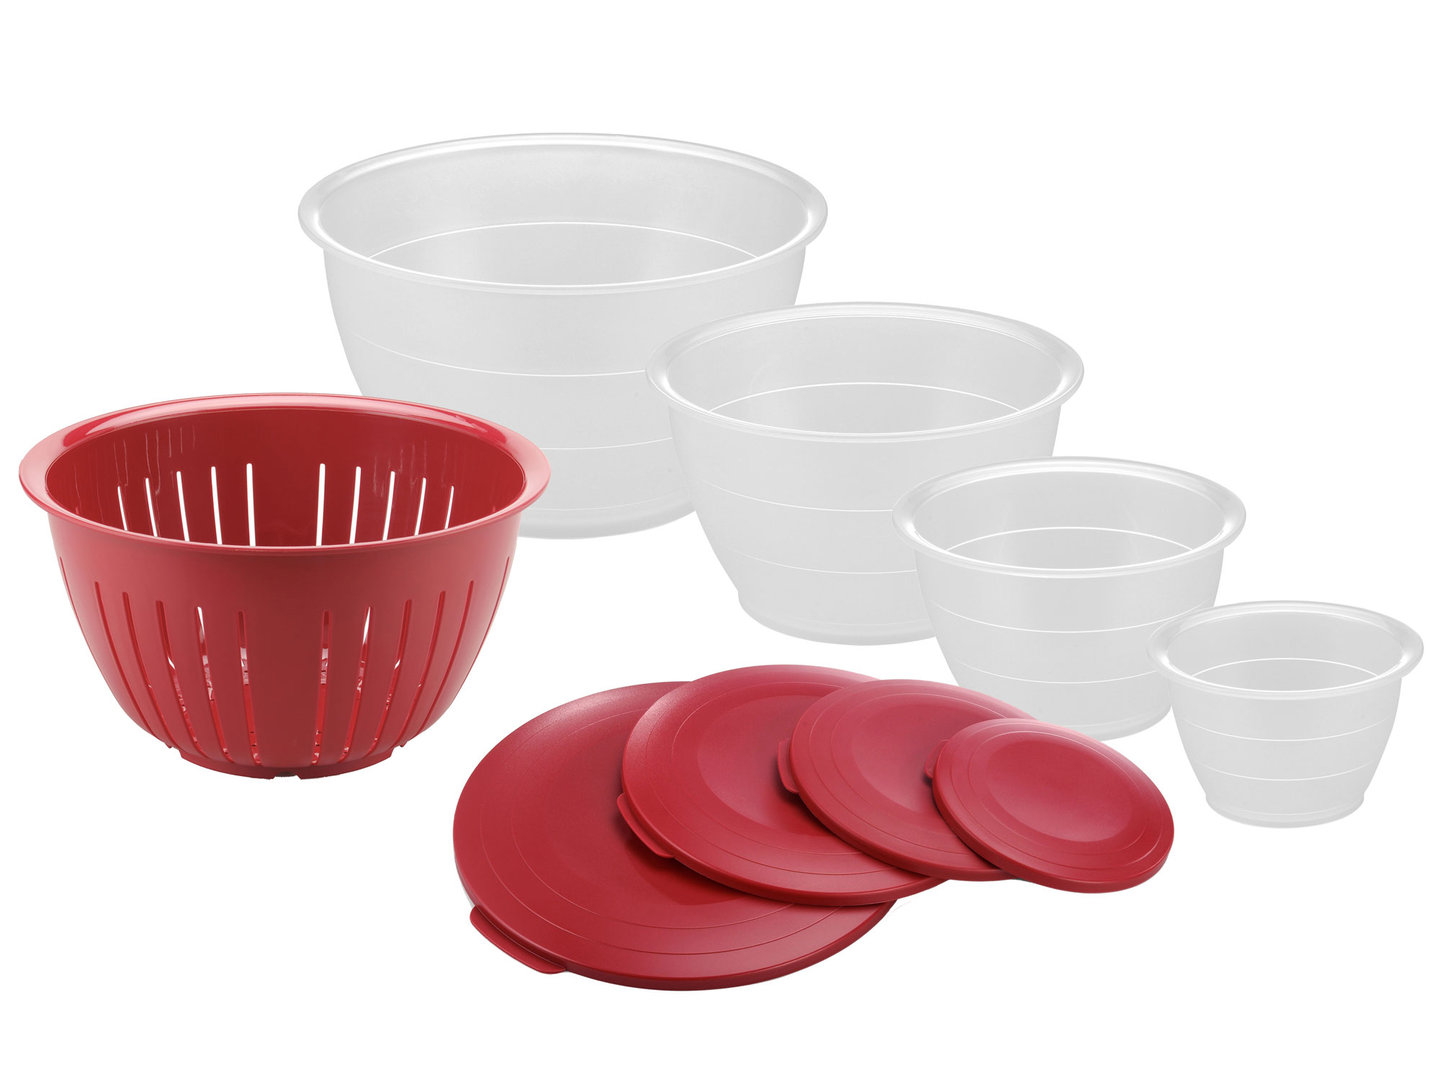 WESTMARK 9 pcs bowl set with colander OLYMPIA red